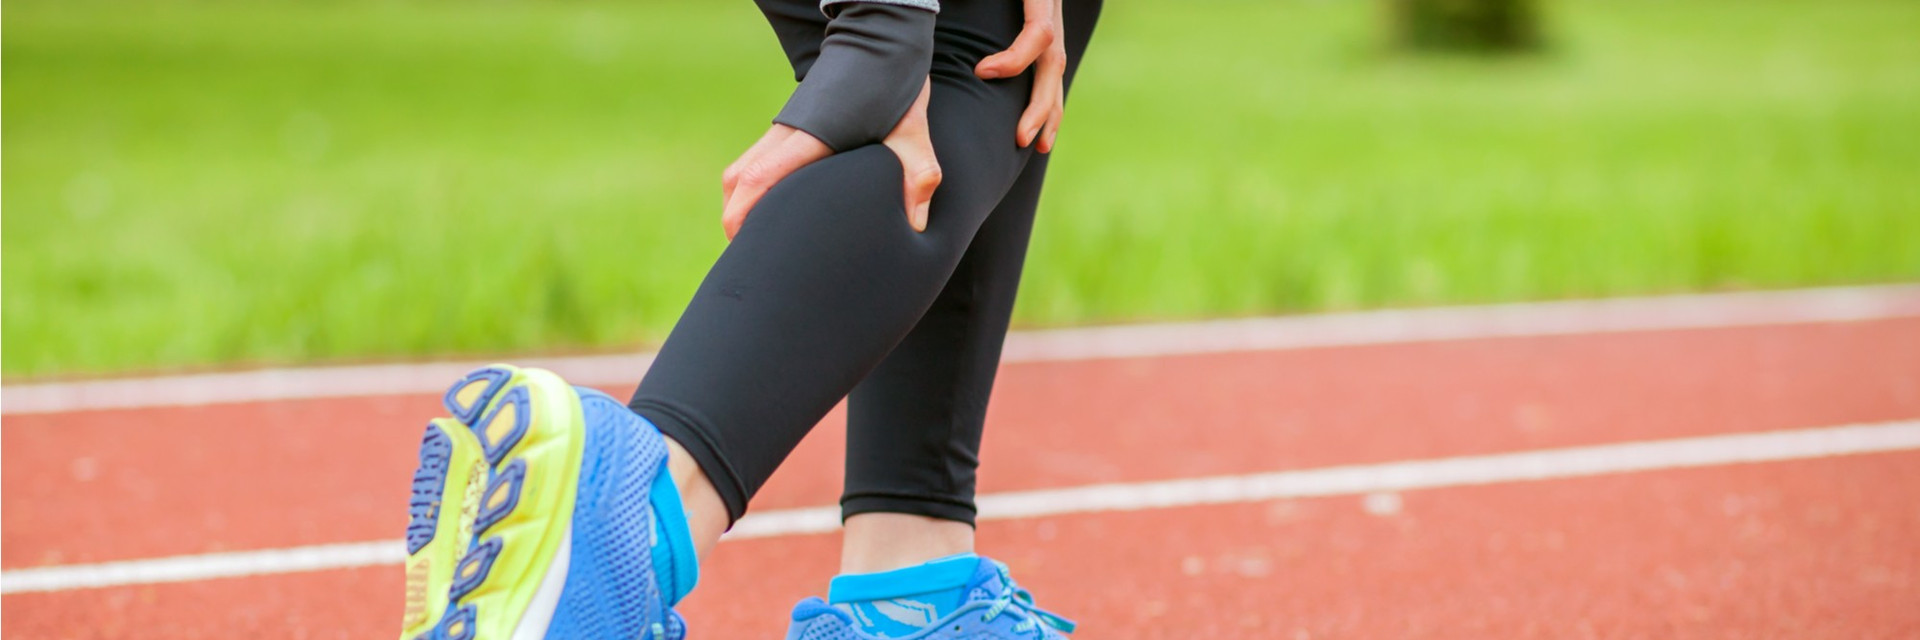 5 Faqs Of Calf Muscle Strain And Prevention Rothman Orthopaedic